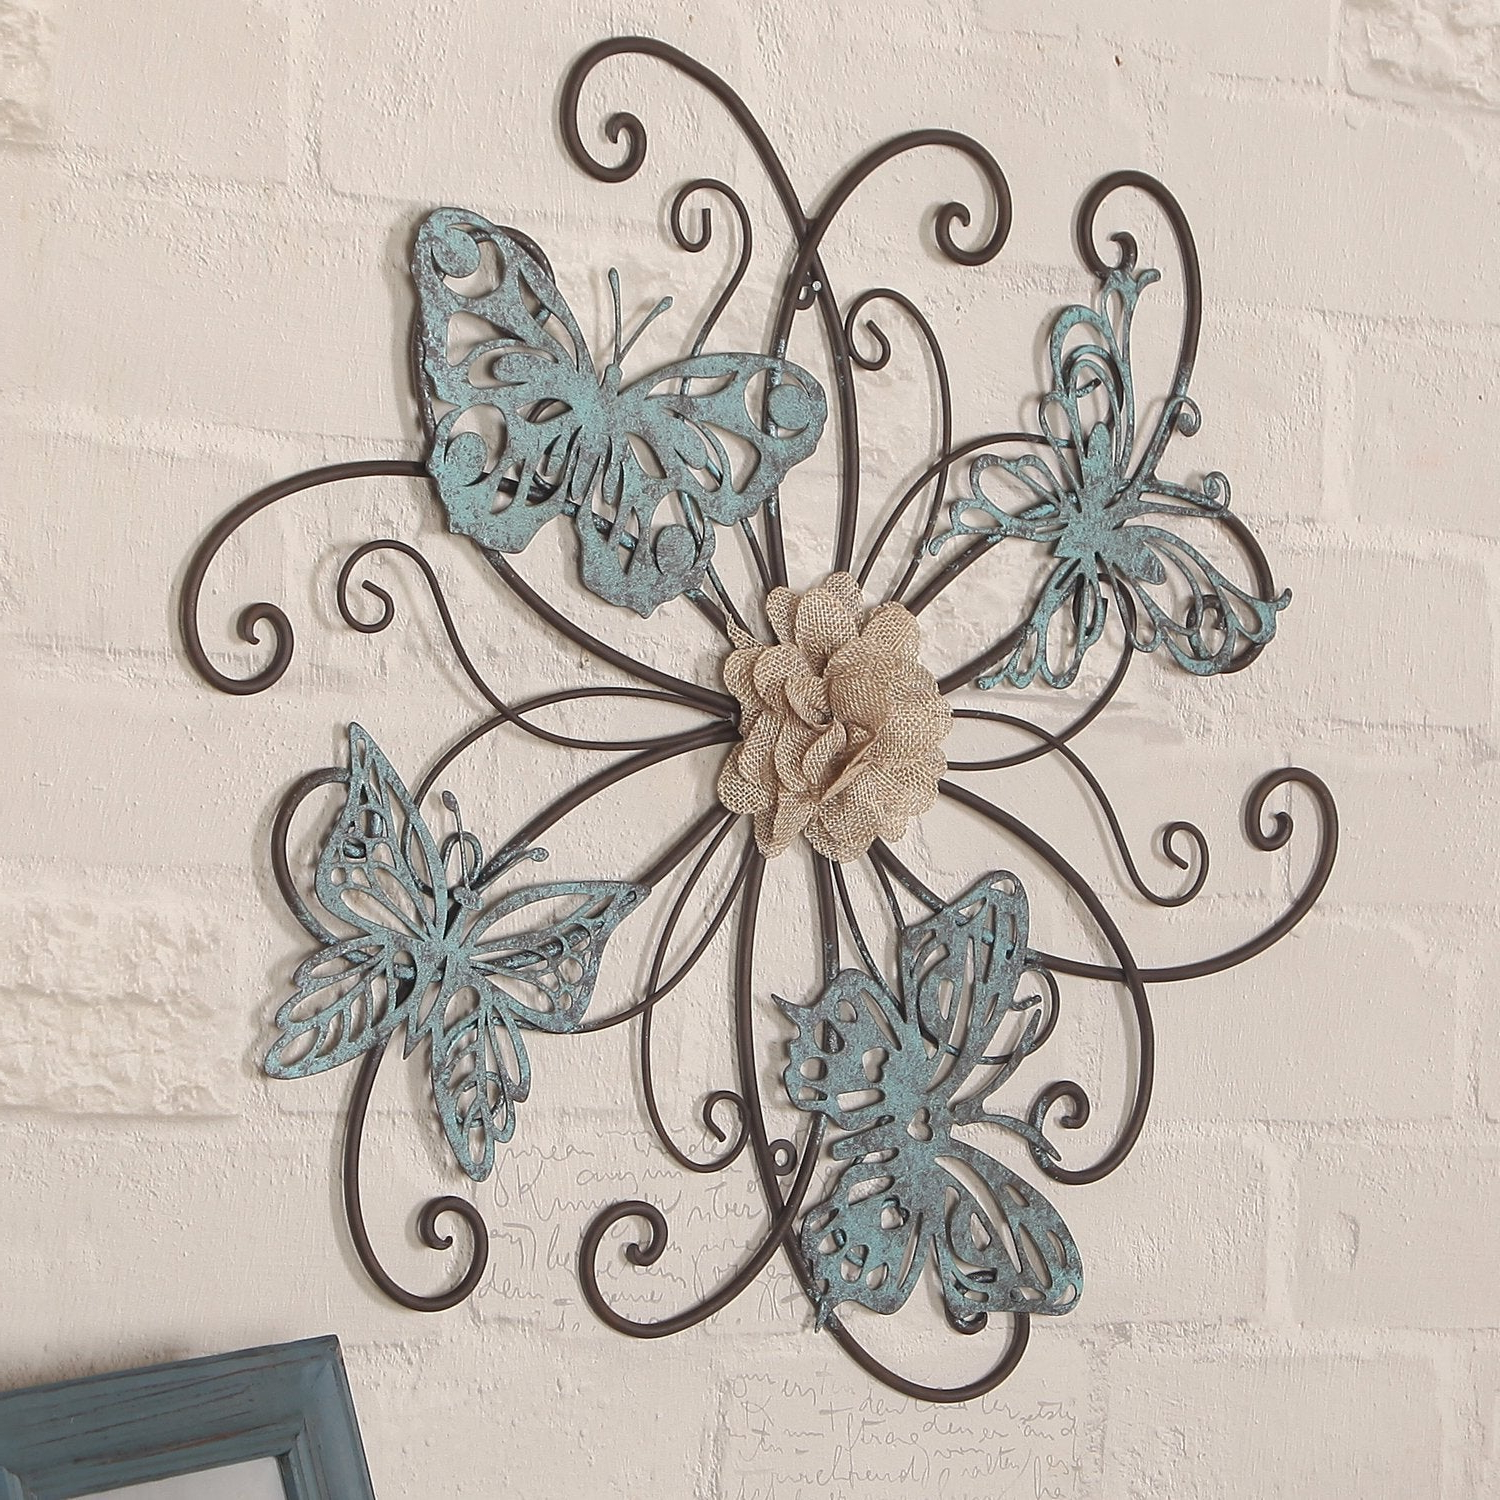 Preferred Shop Adeco Flower And Butterfly Urban Design Metal Wall Decor For Intended For Flower And Butterfly Urban Design Metal Wall Decor (View 5 of 20)